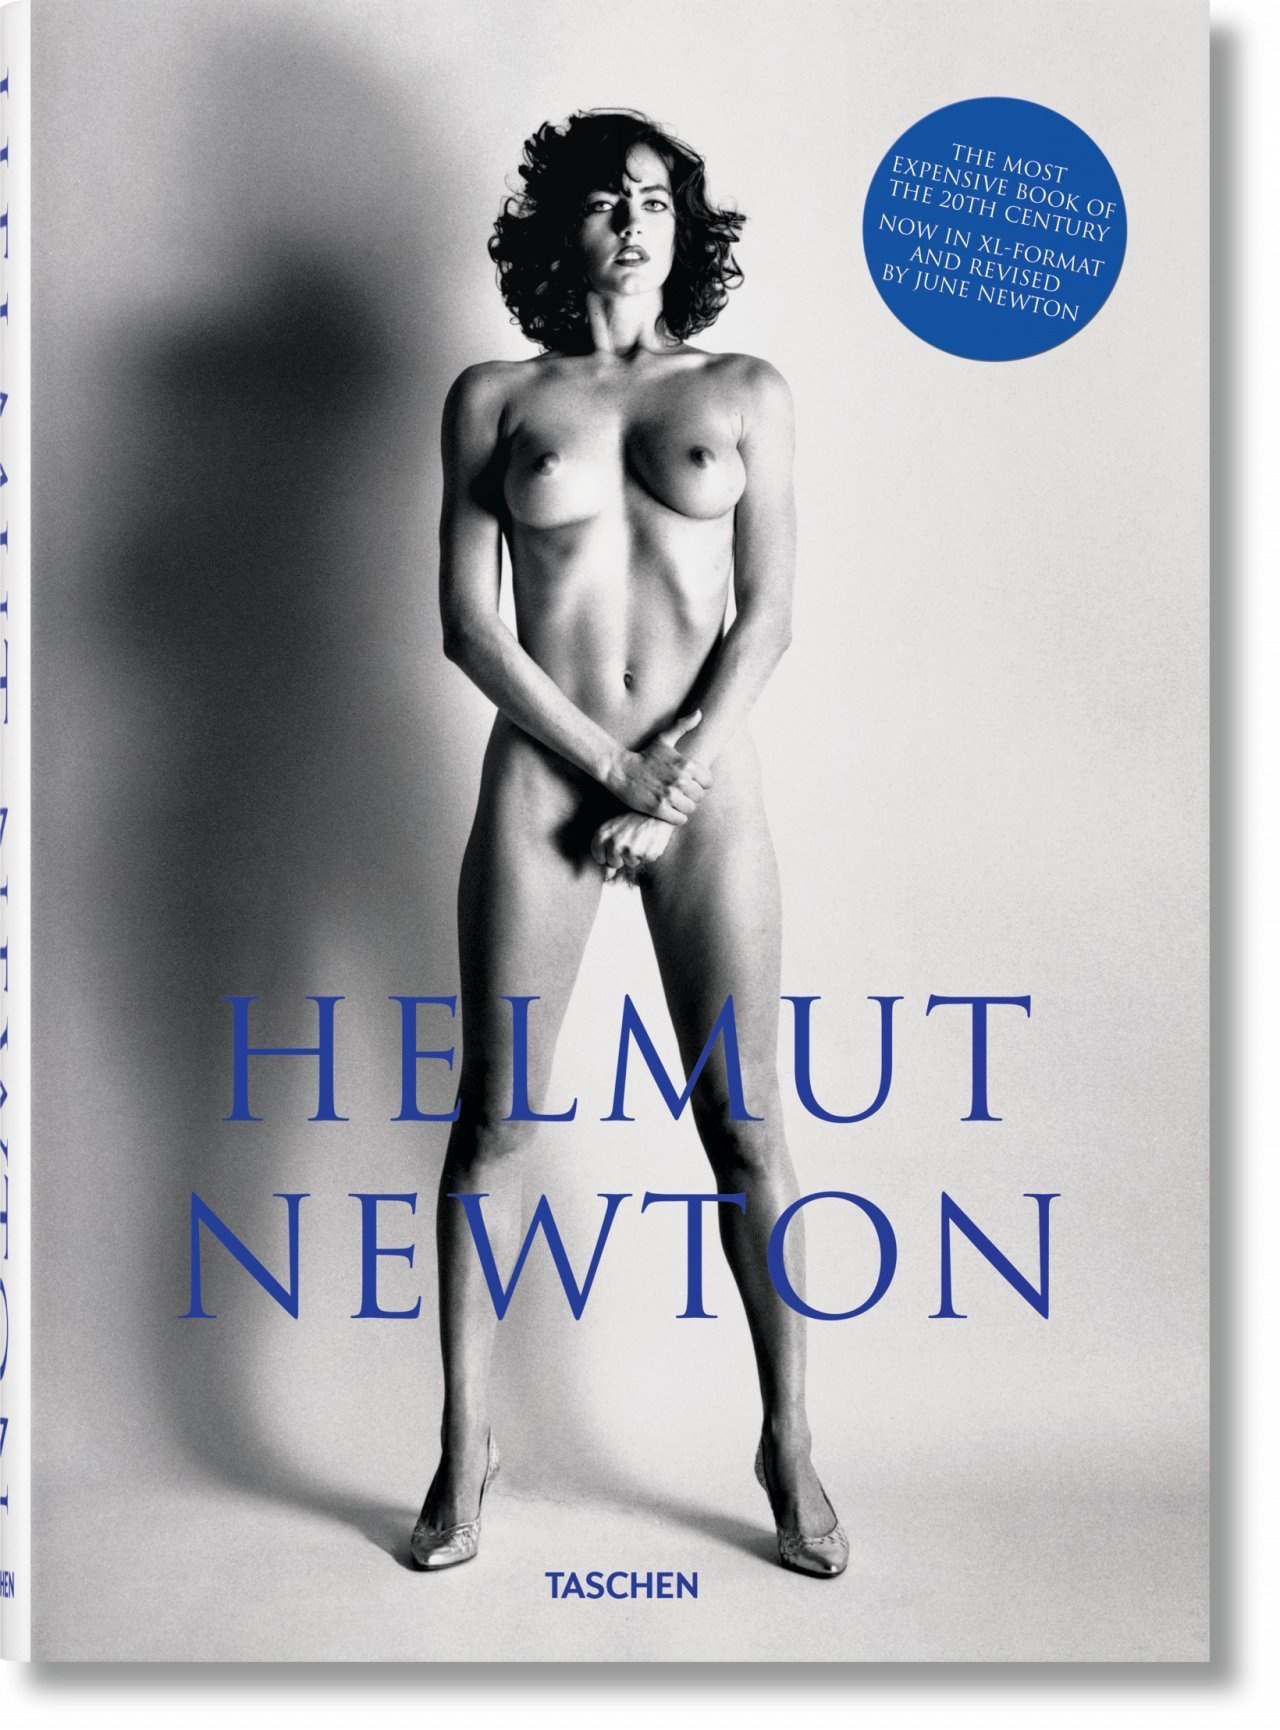 HELMUT NEWTON. SUMO. REVISED BY JUNE NEWTON